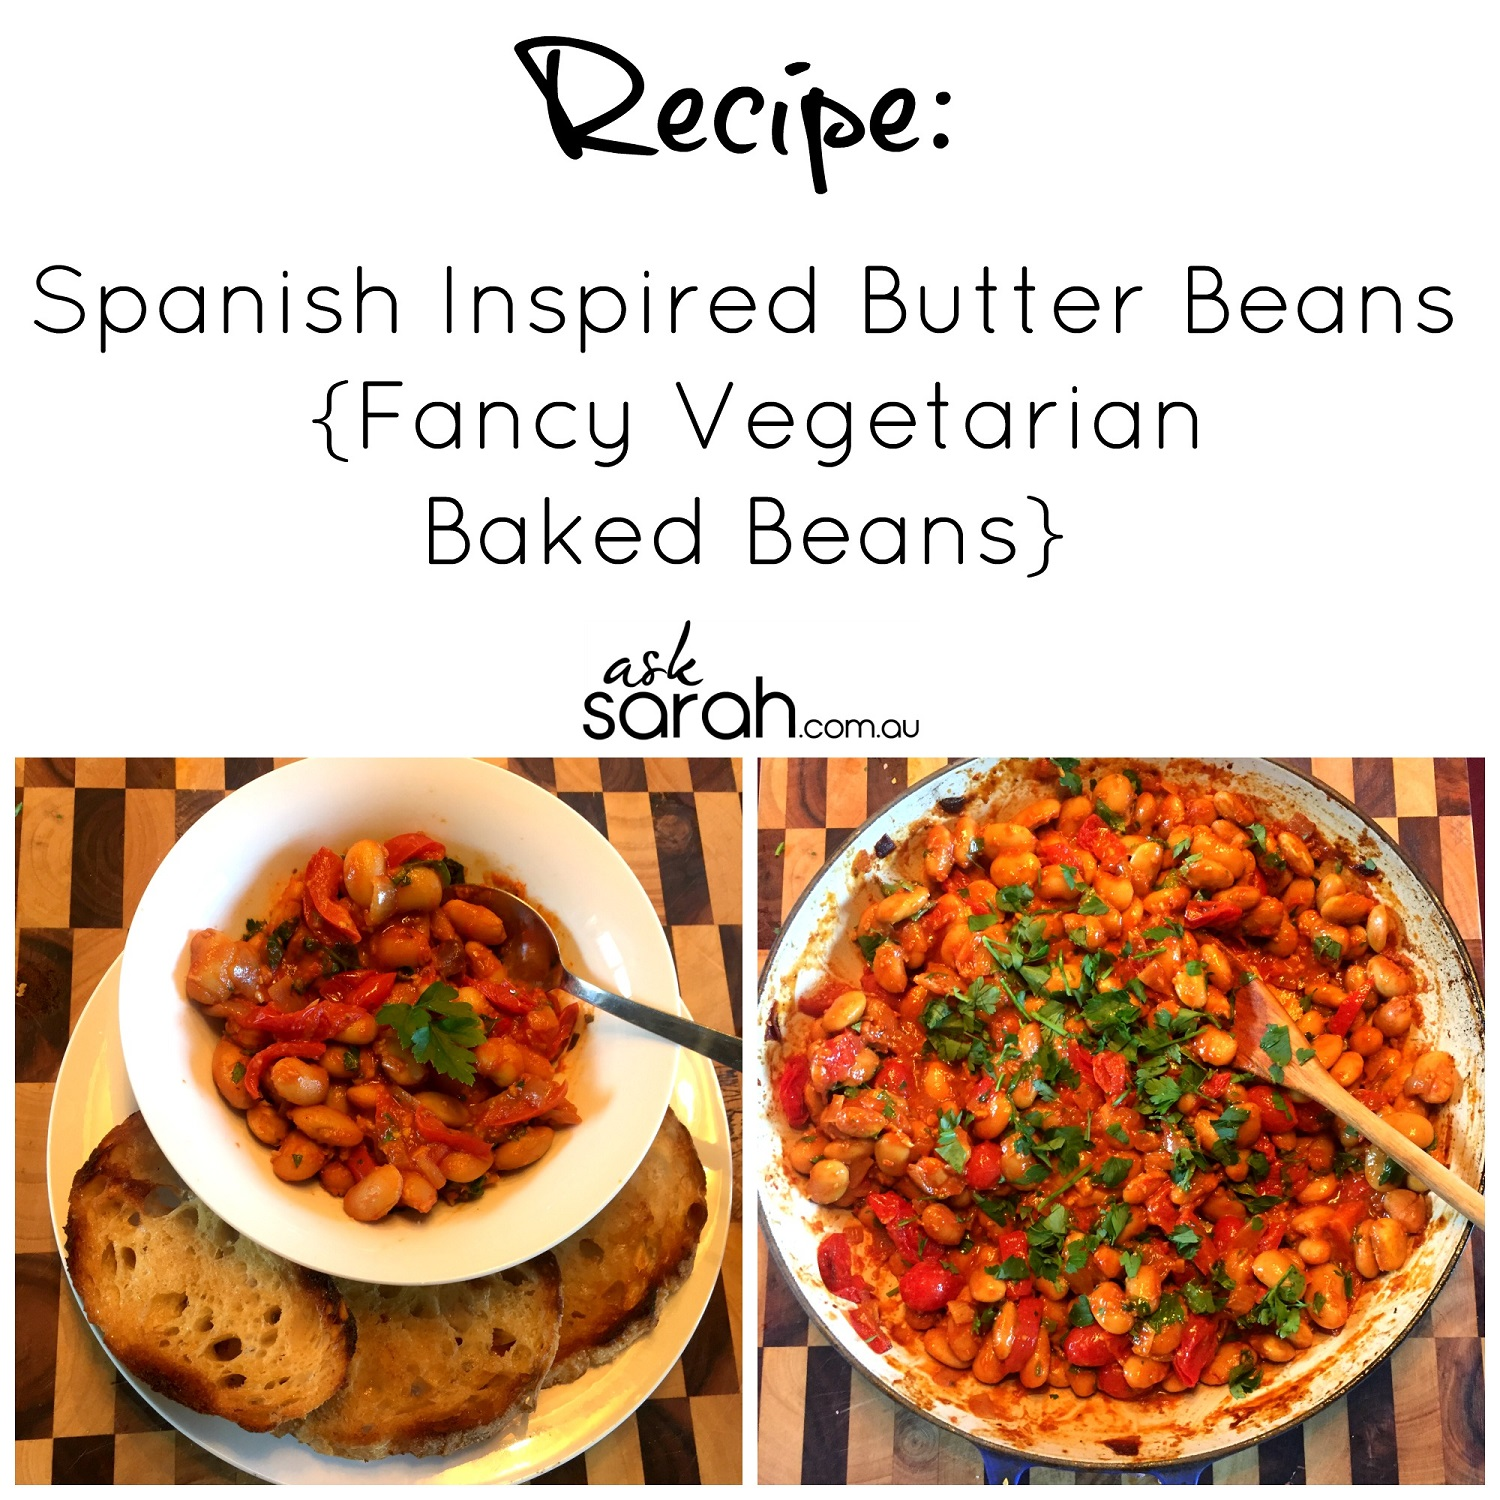 Recipe: Spanish Inspired Butter Beans {Fancy Vegetarian Baked Beans}